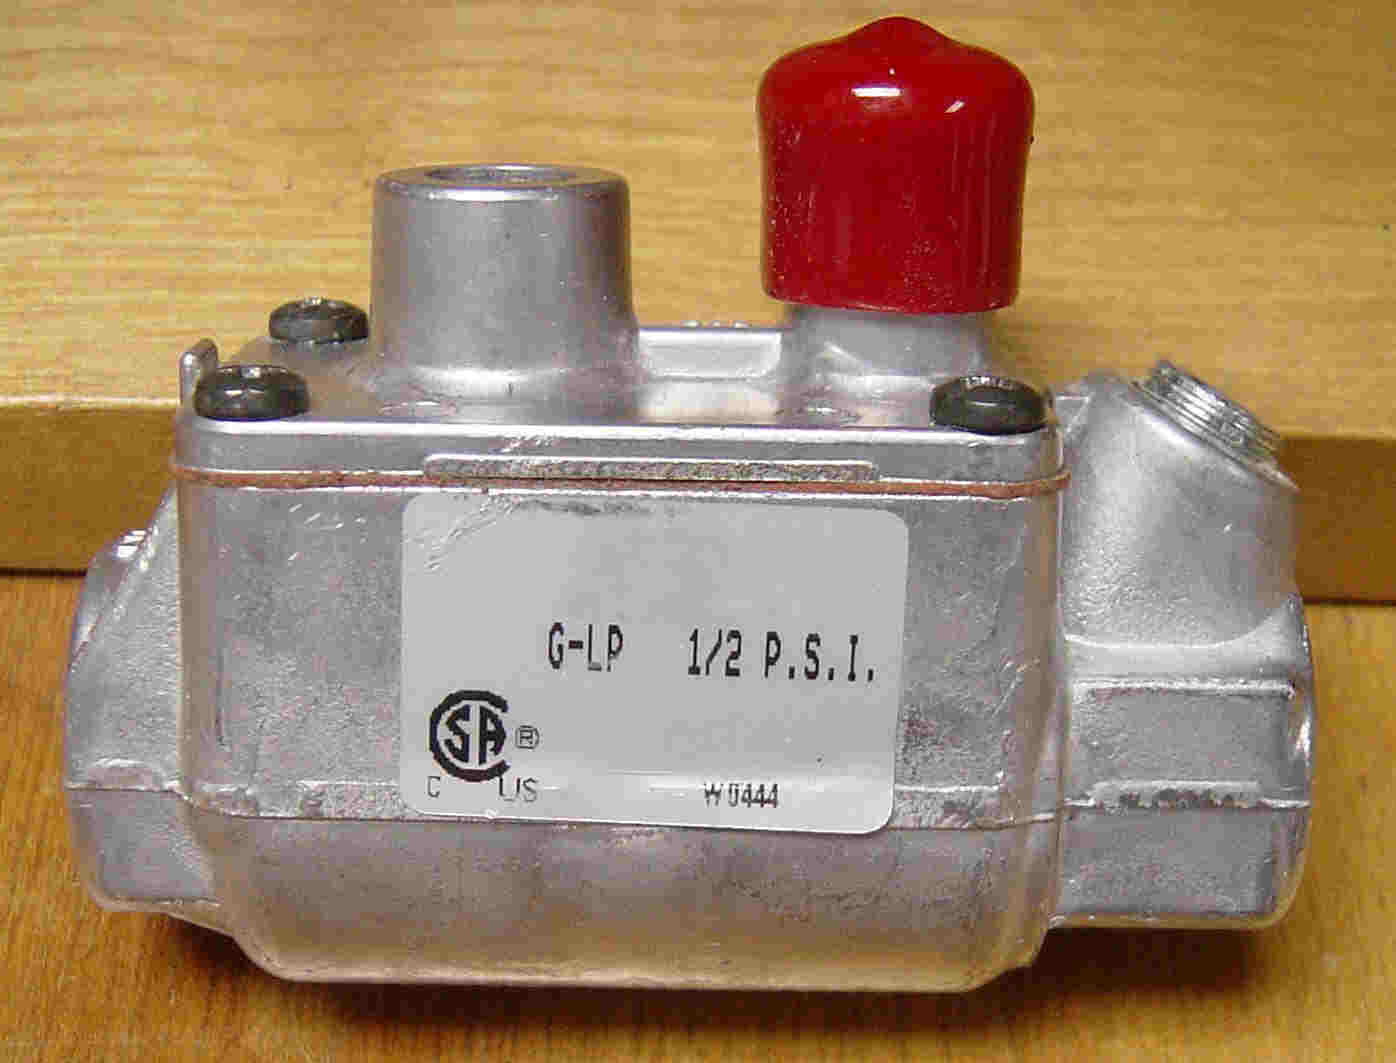 Baso manual safety shut-off valve for use on  manual-start catalytic heaters